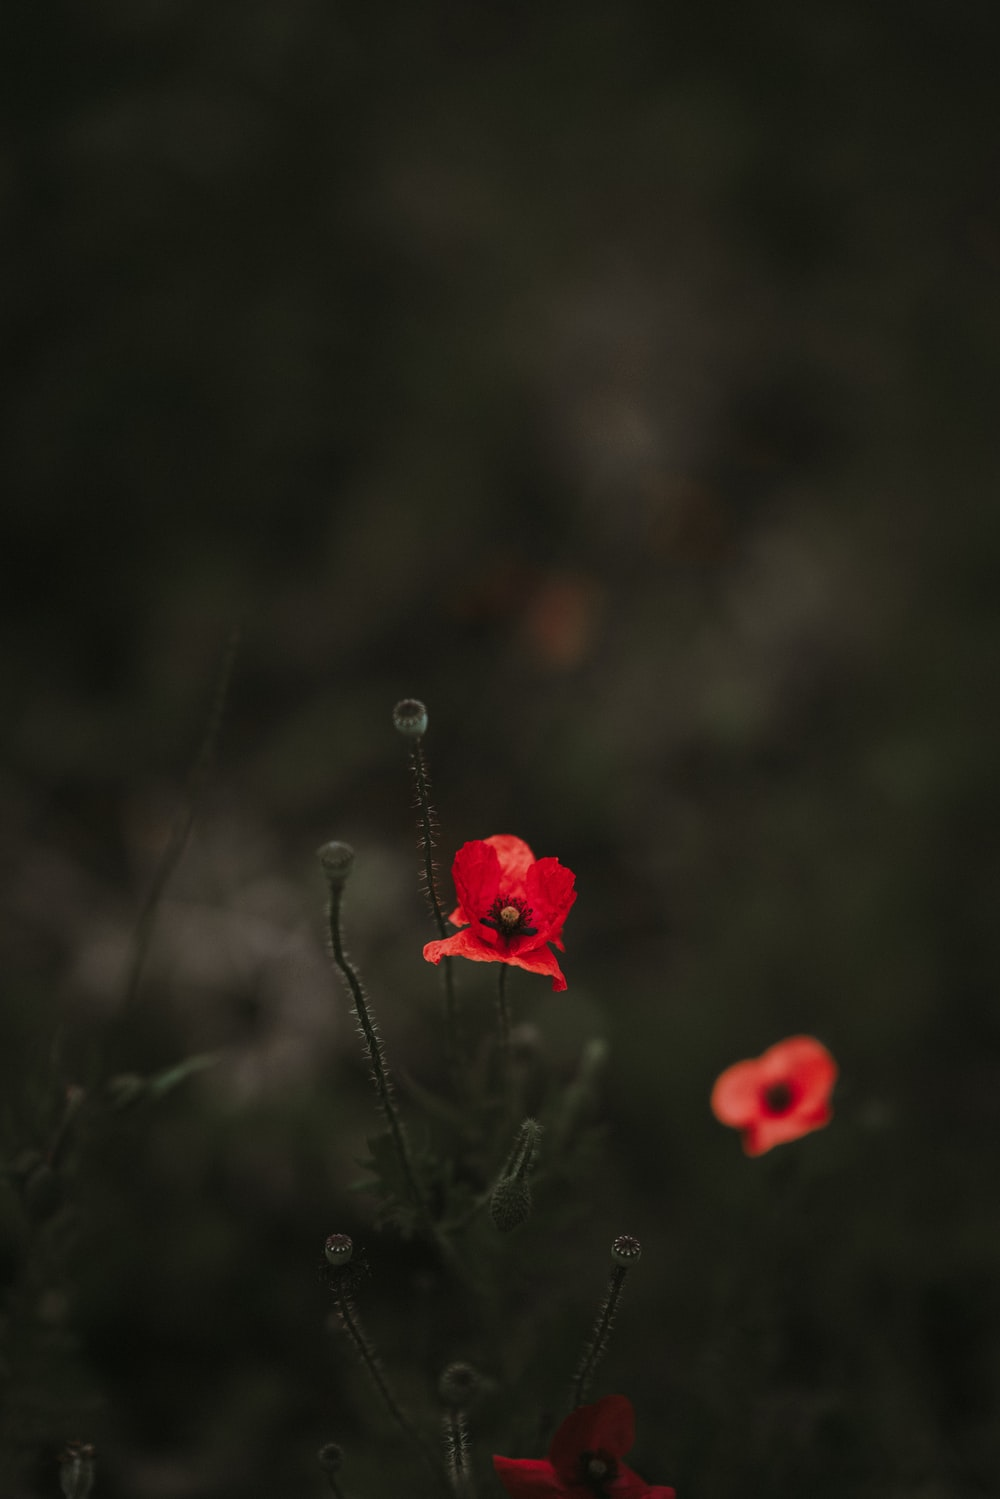 Poppy Pictures Download Free Images On Unsplash